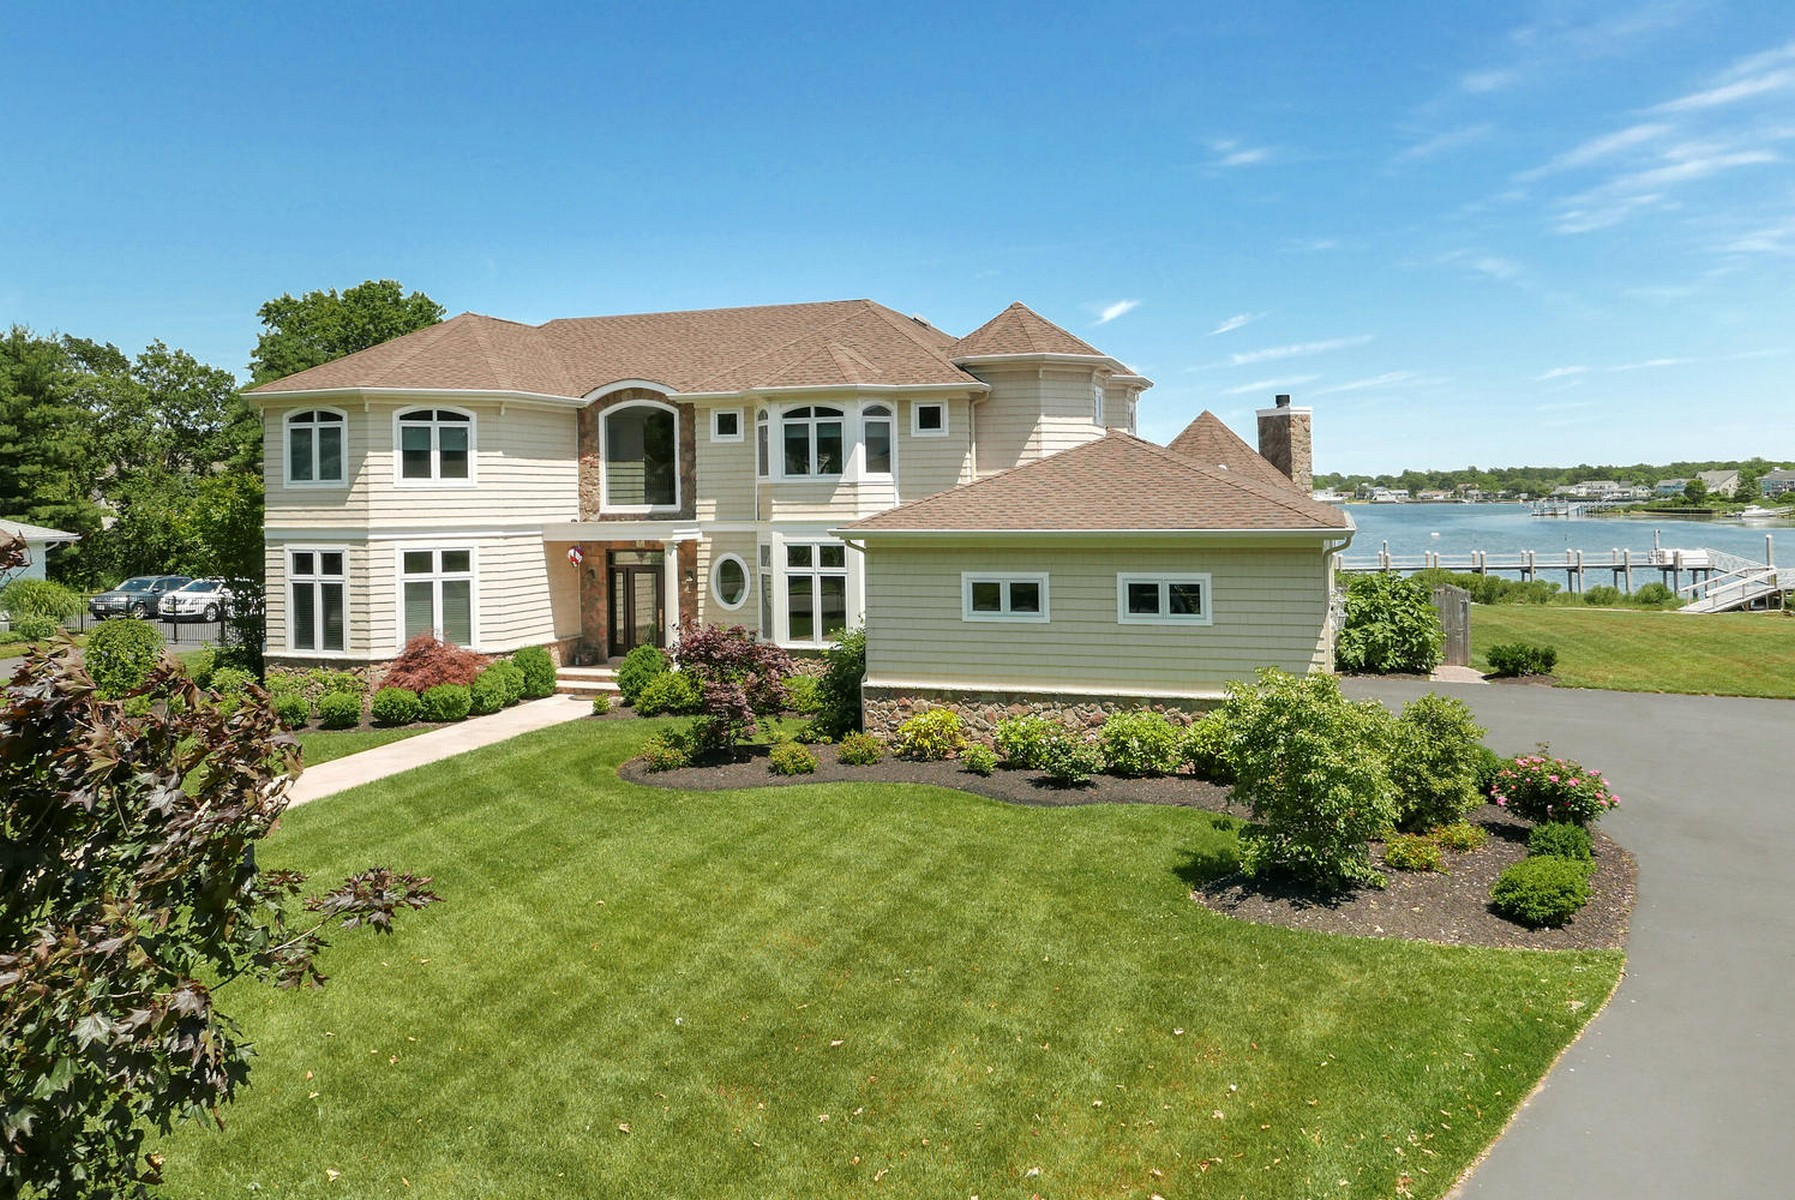 Single Family Home for Sale at Sophisticated Riverfront Home on the Shrewsbury River 74 Rivers Edge Dr. Little Silver, New Jersey 07739 United States